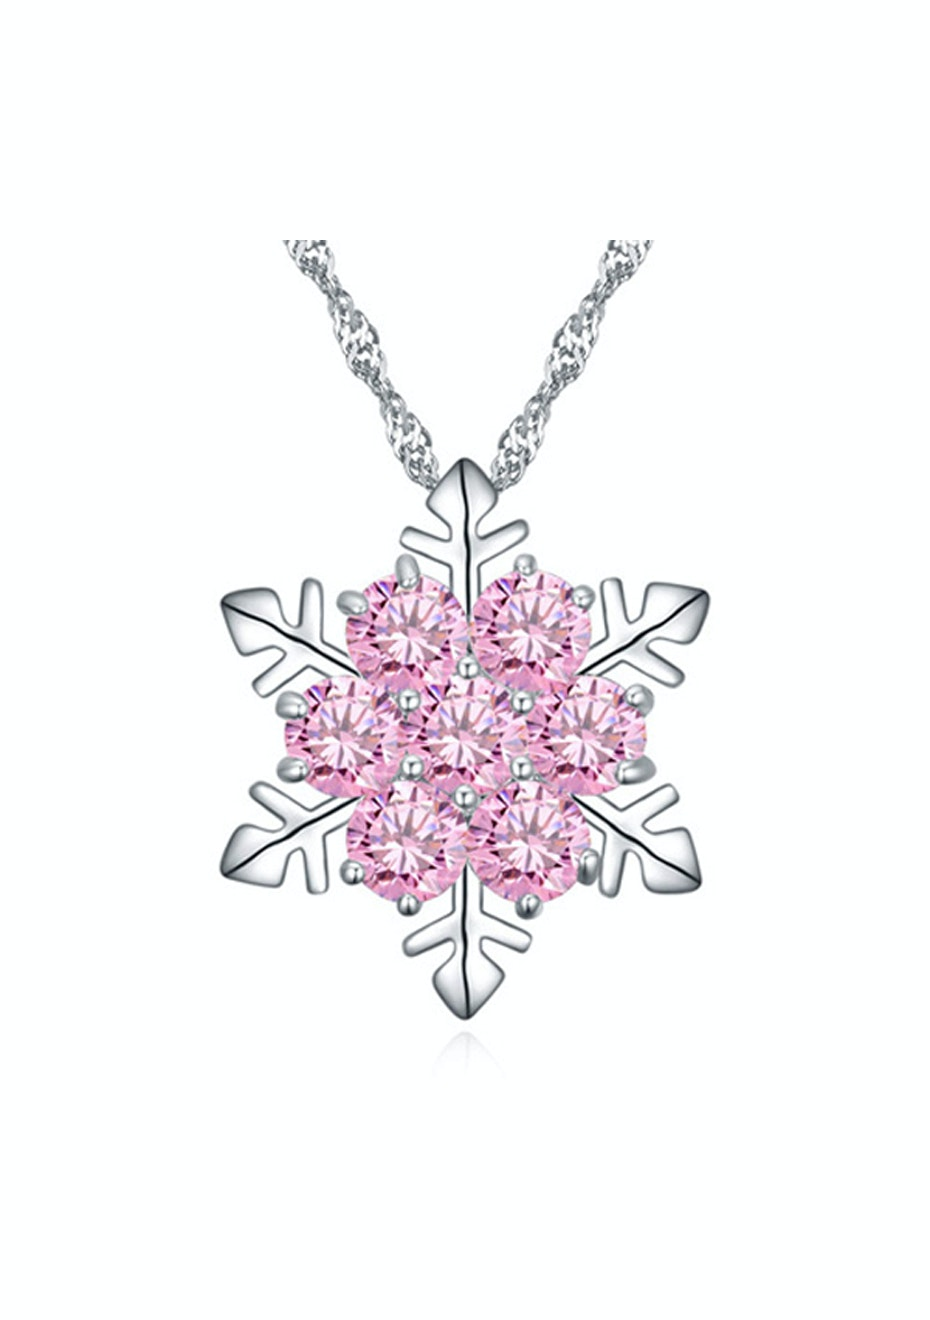 Frozen Flake Pendant Necklace Embellished with Crystals from Swarovski -PNK